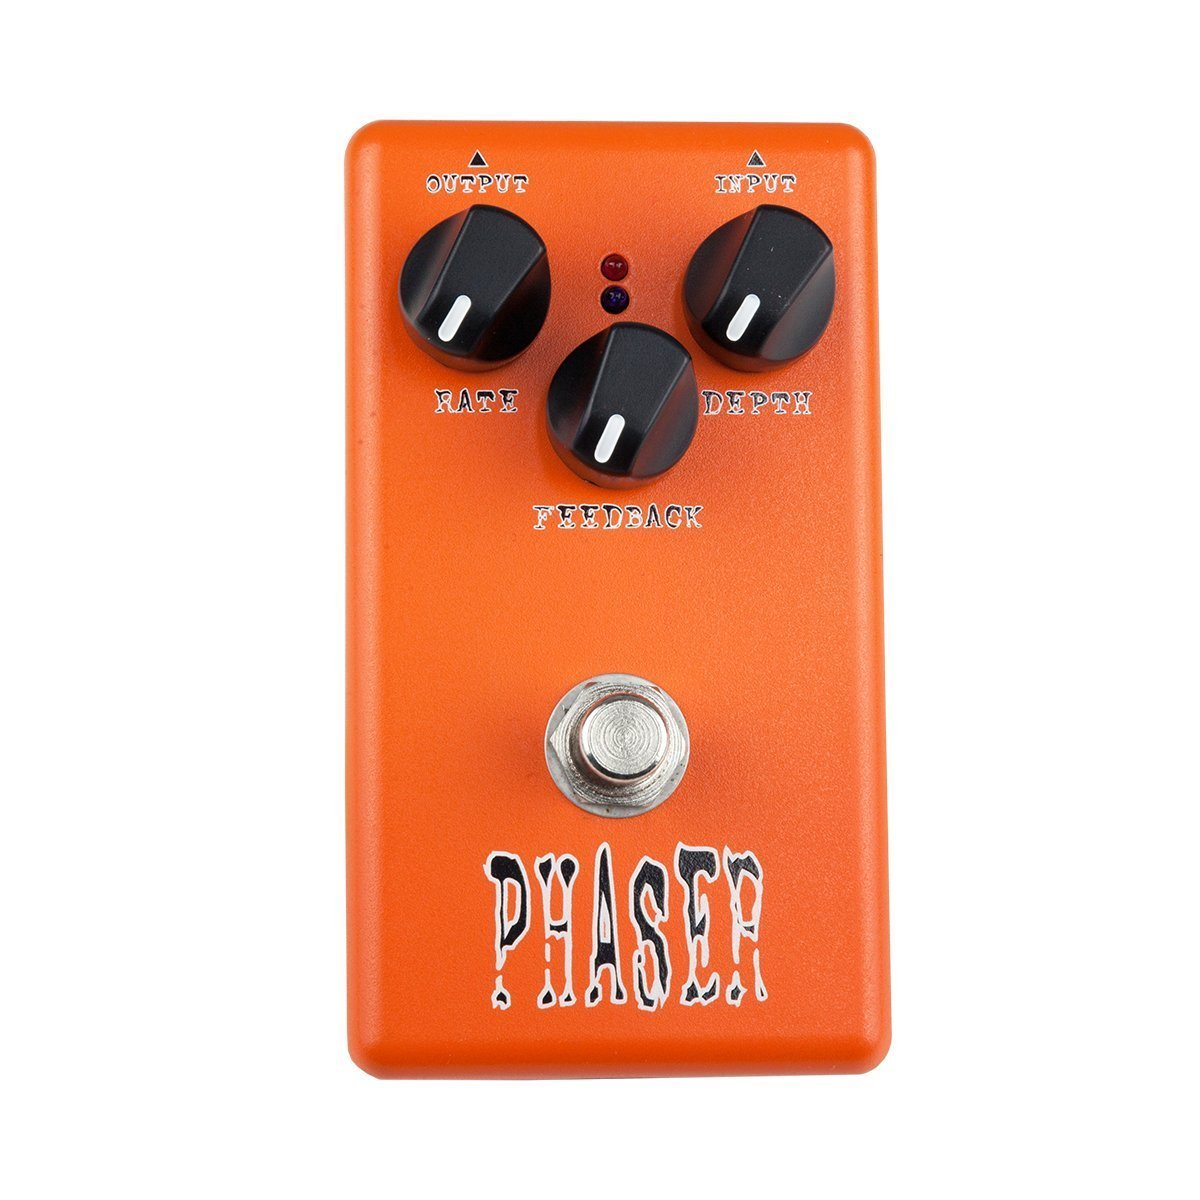 Crossfire Phaser Guitar Effects Pedal